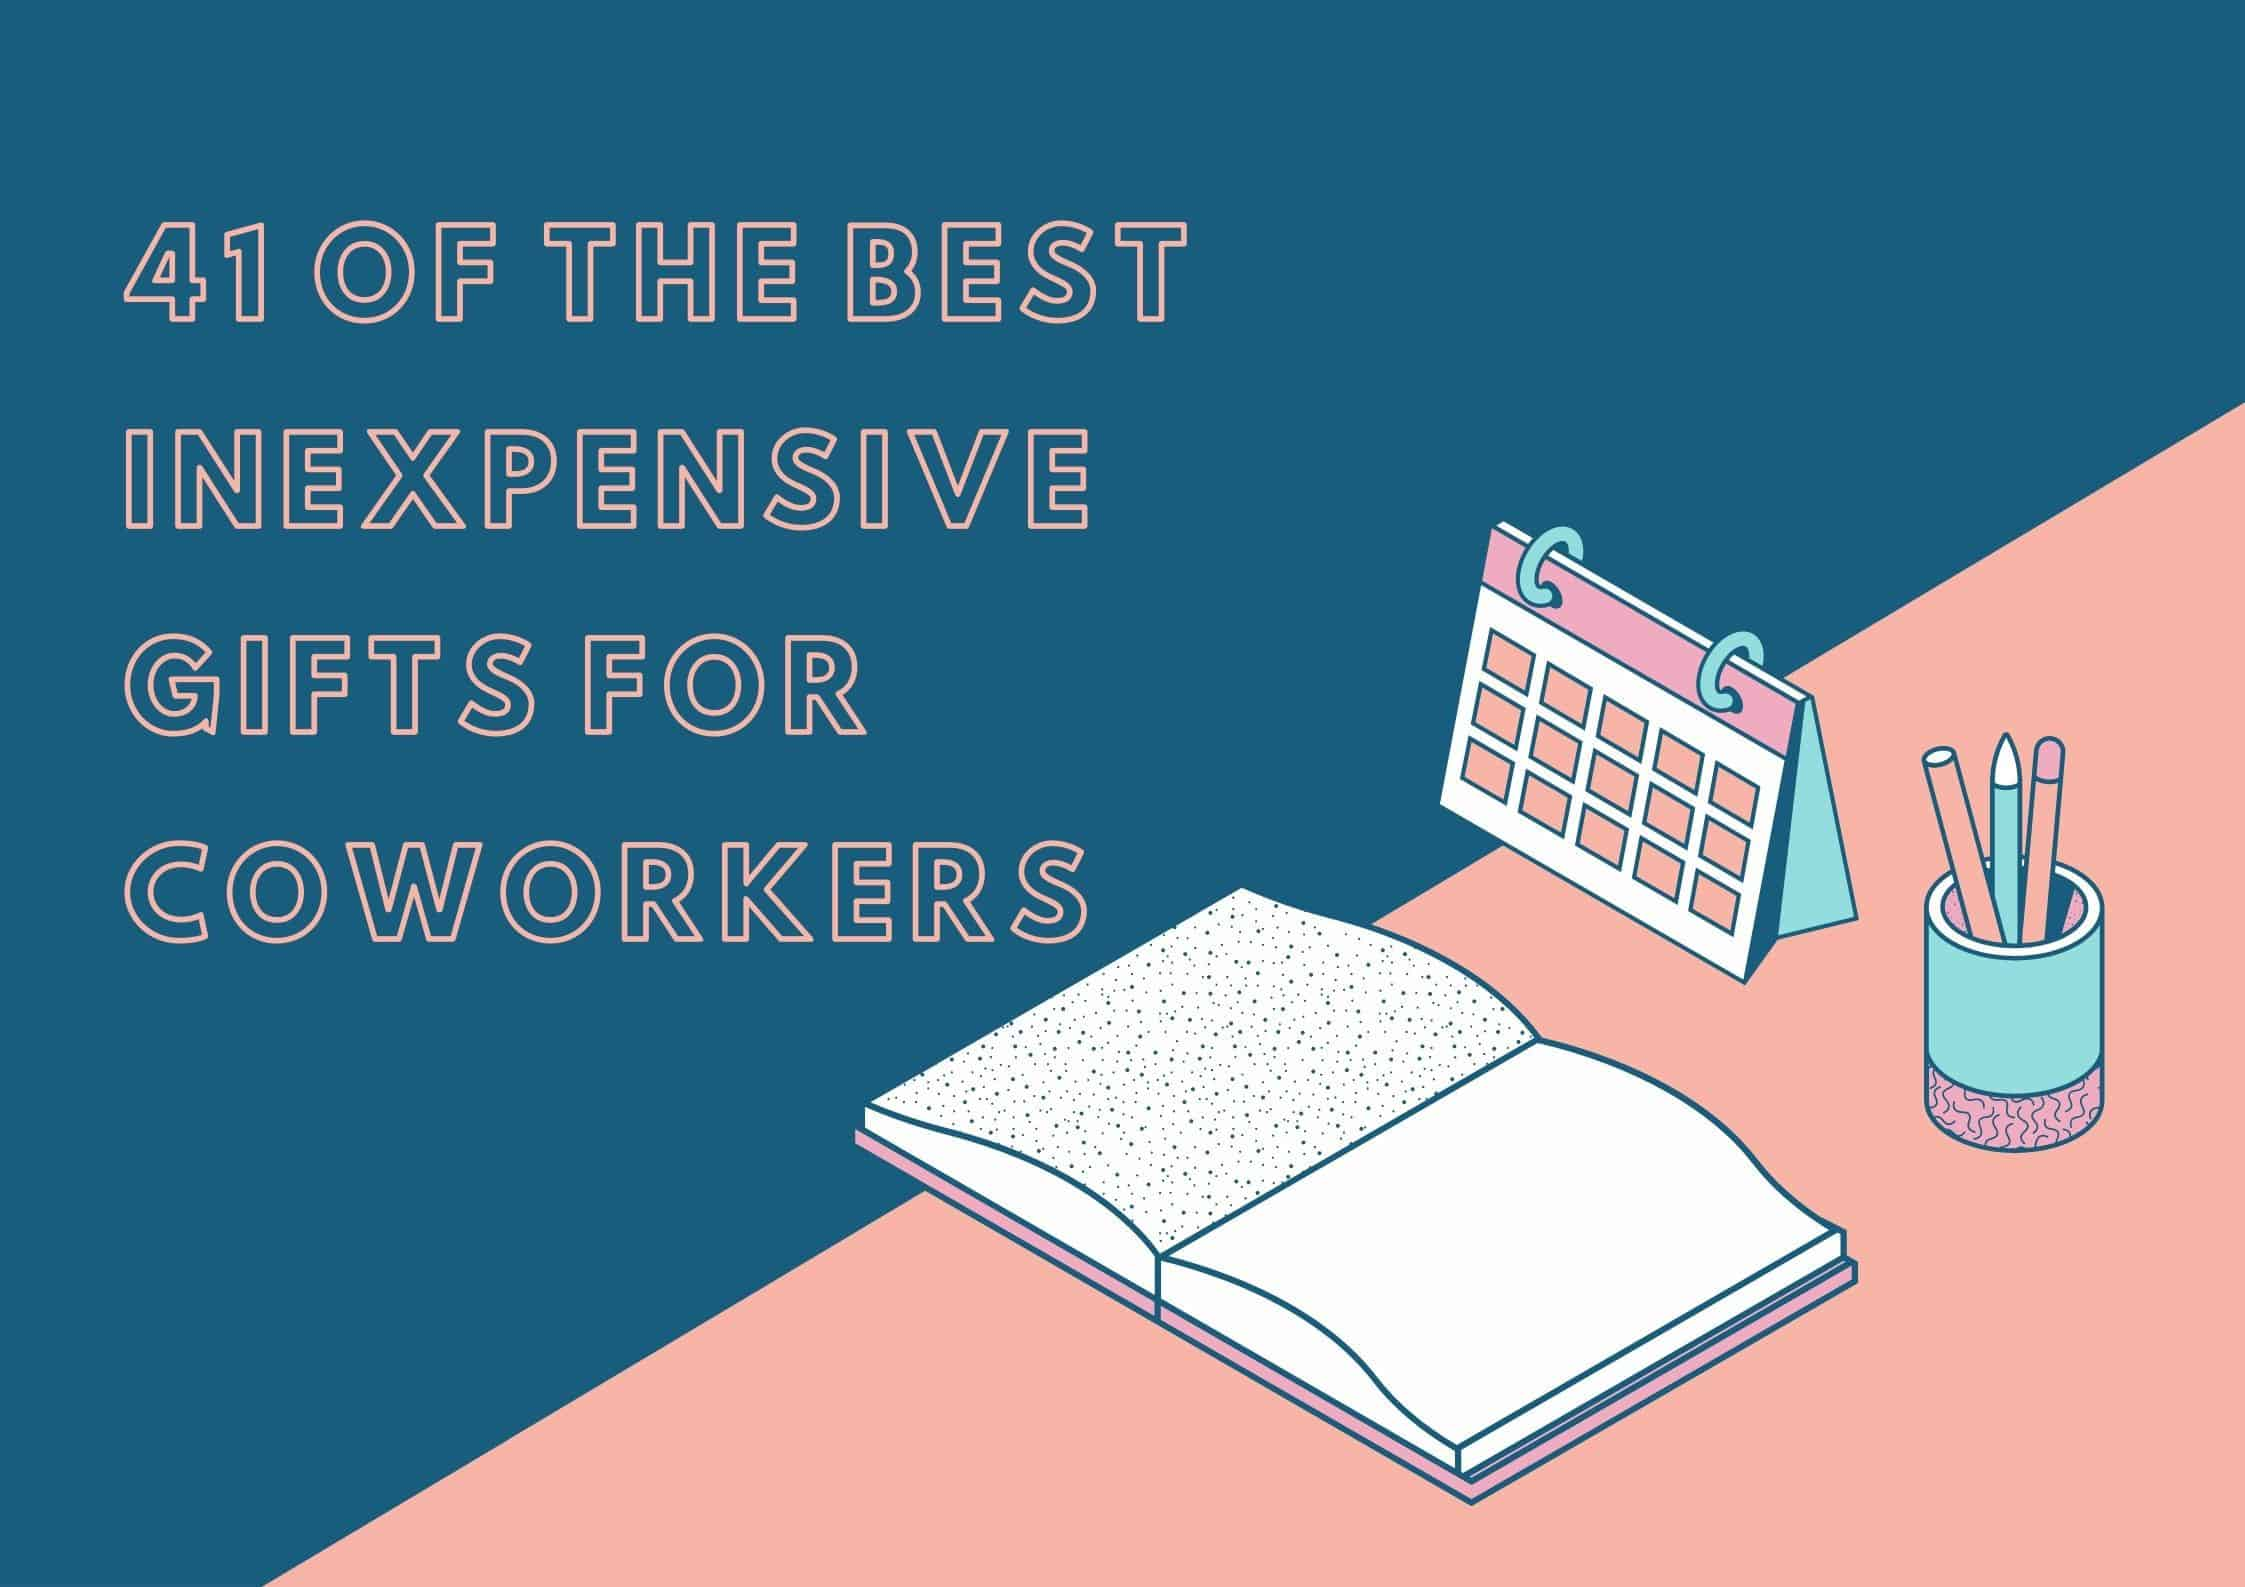 41 of the Best Inexpensive Gifts For Coworkers